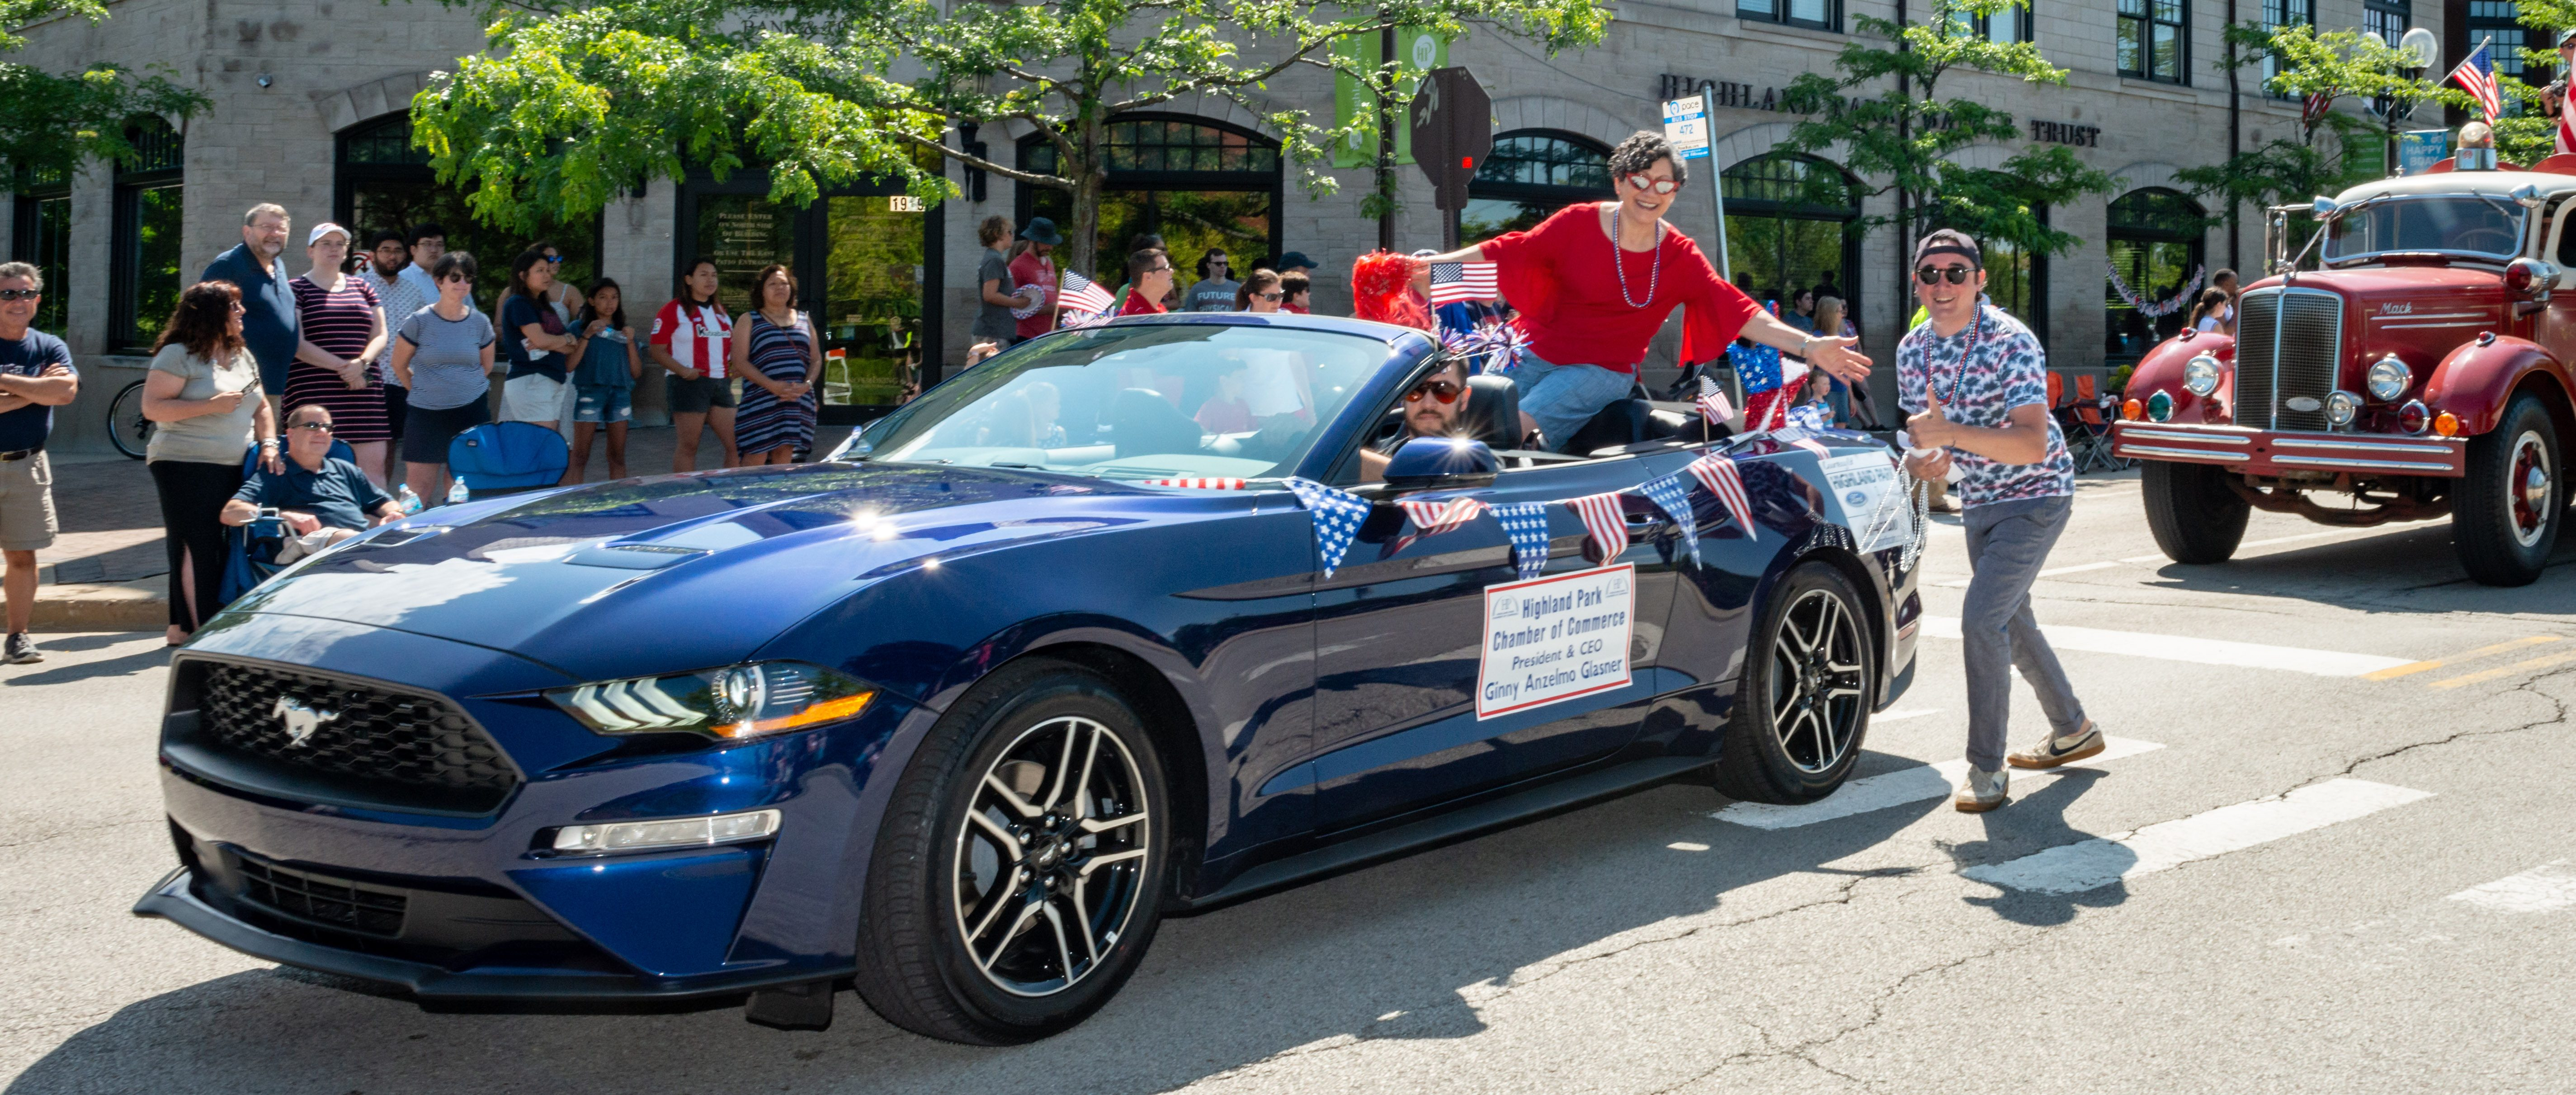 Ginny and Michael at the 2019 4th of July Parade